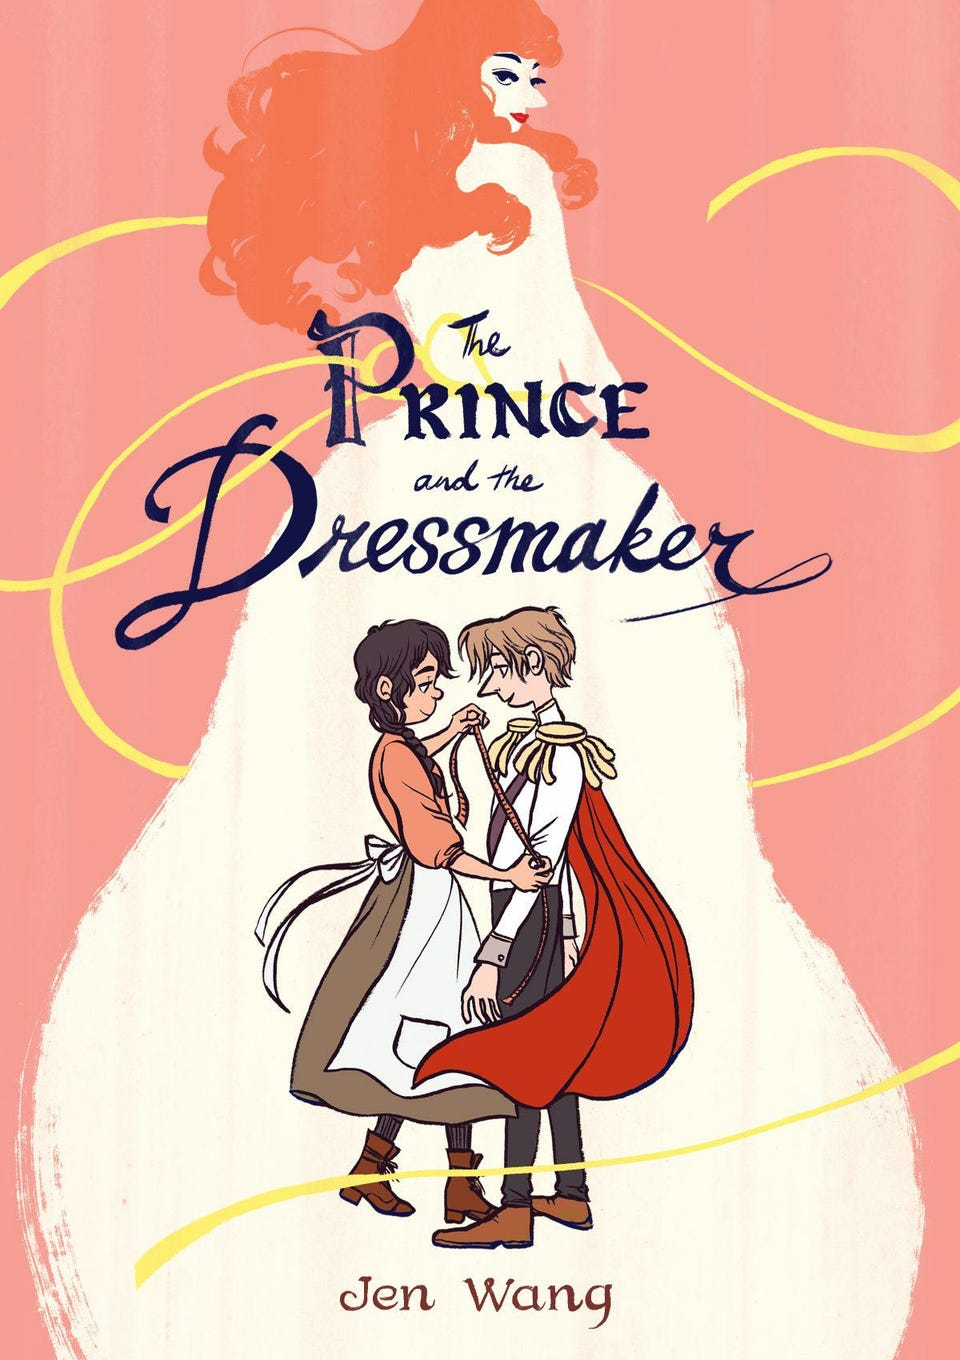 medium resolution of  the prince and the dressmaker is a genderqueer fairy tale for all ages